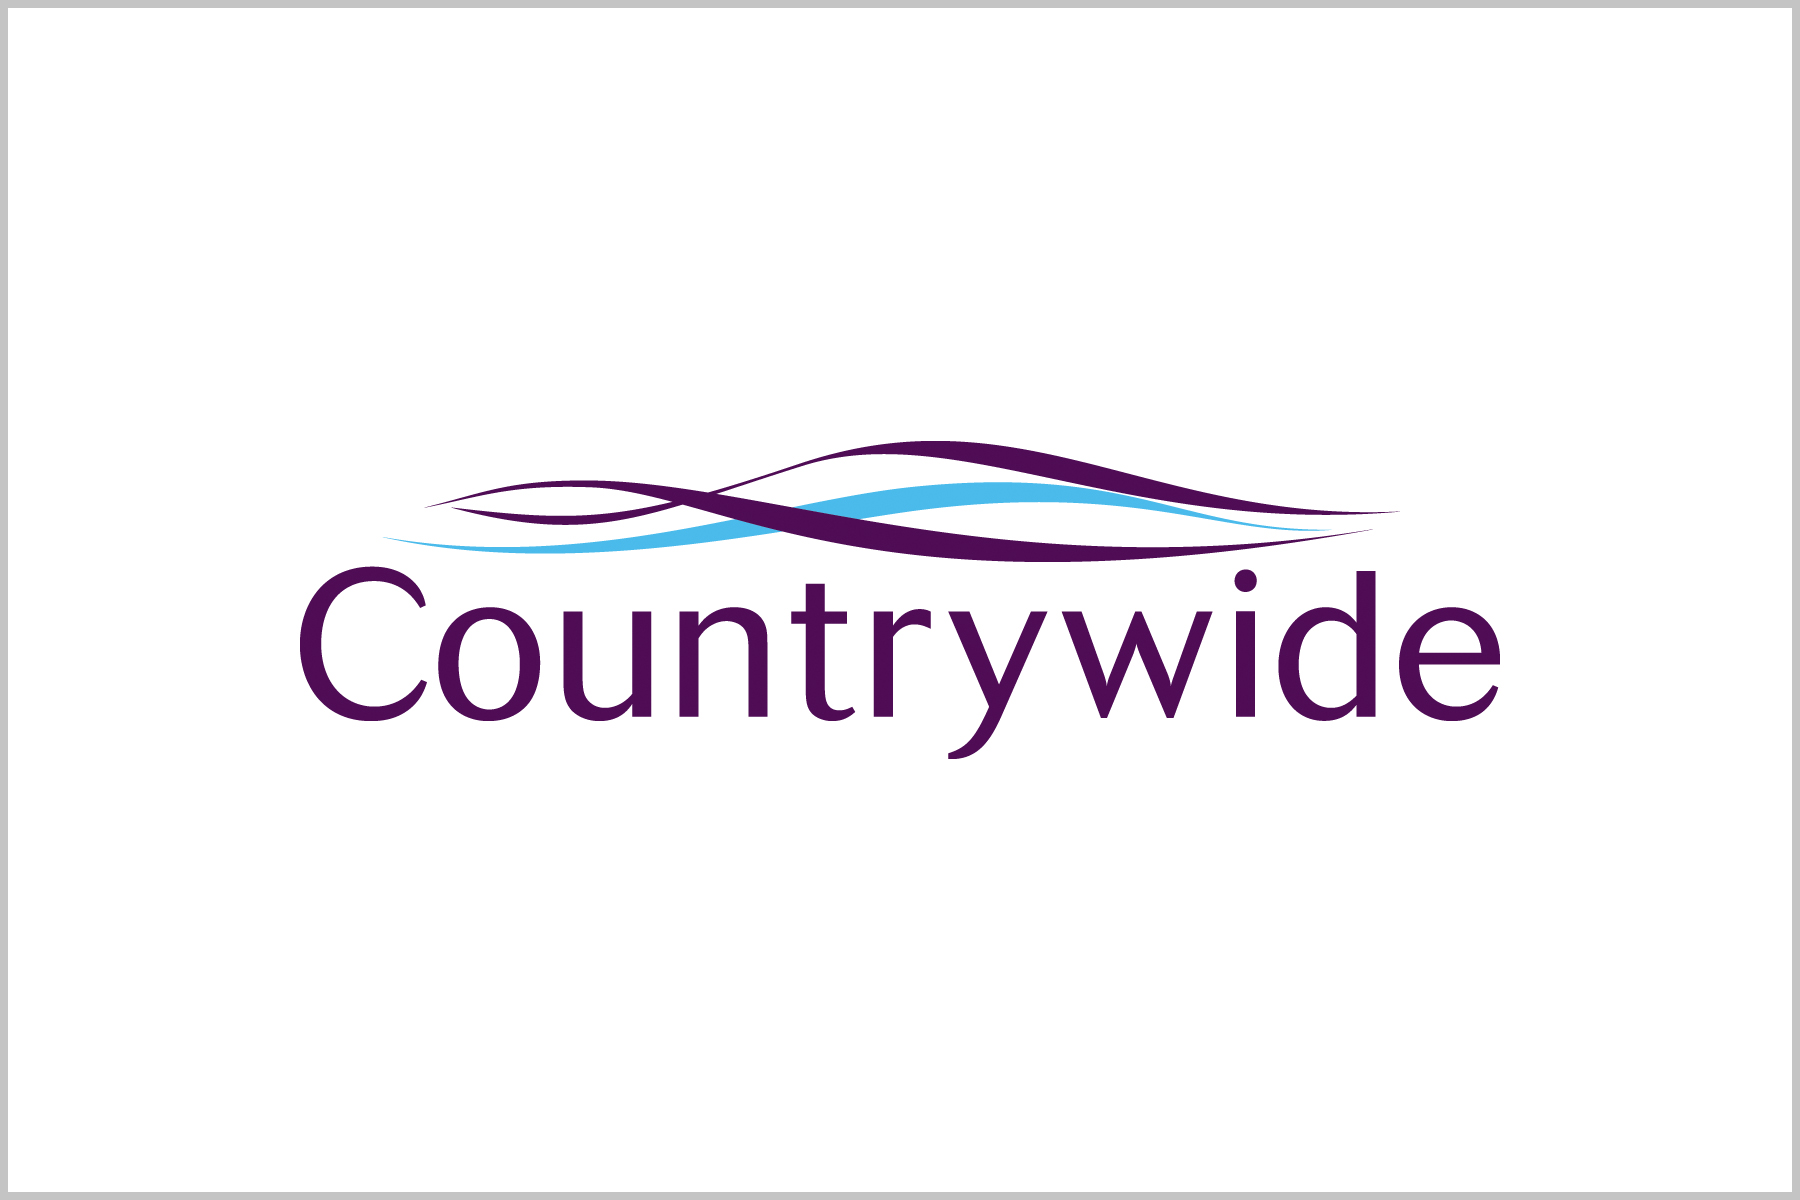 Picture of Countrywide logo